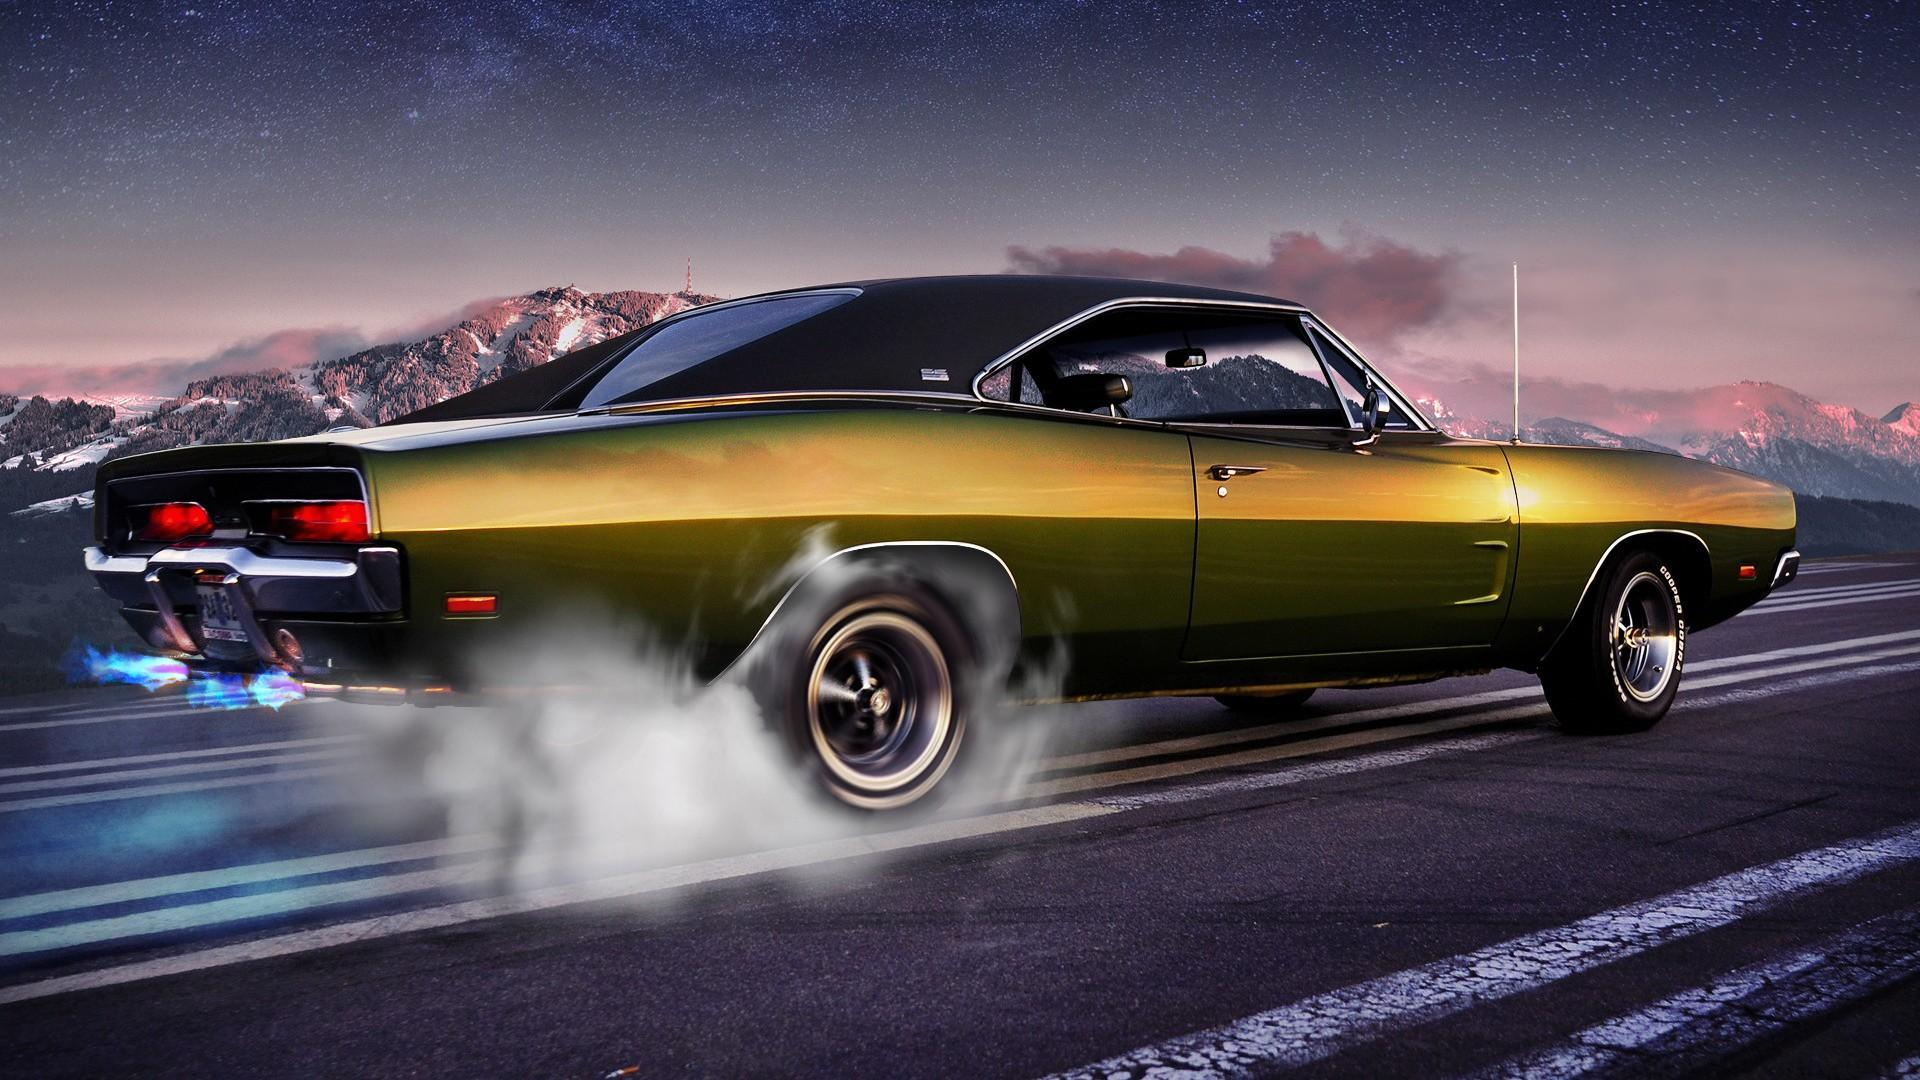 Classic Muscle Car Wallpaper - iBackgroundWallpaper